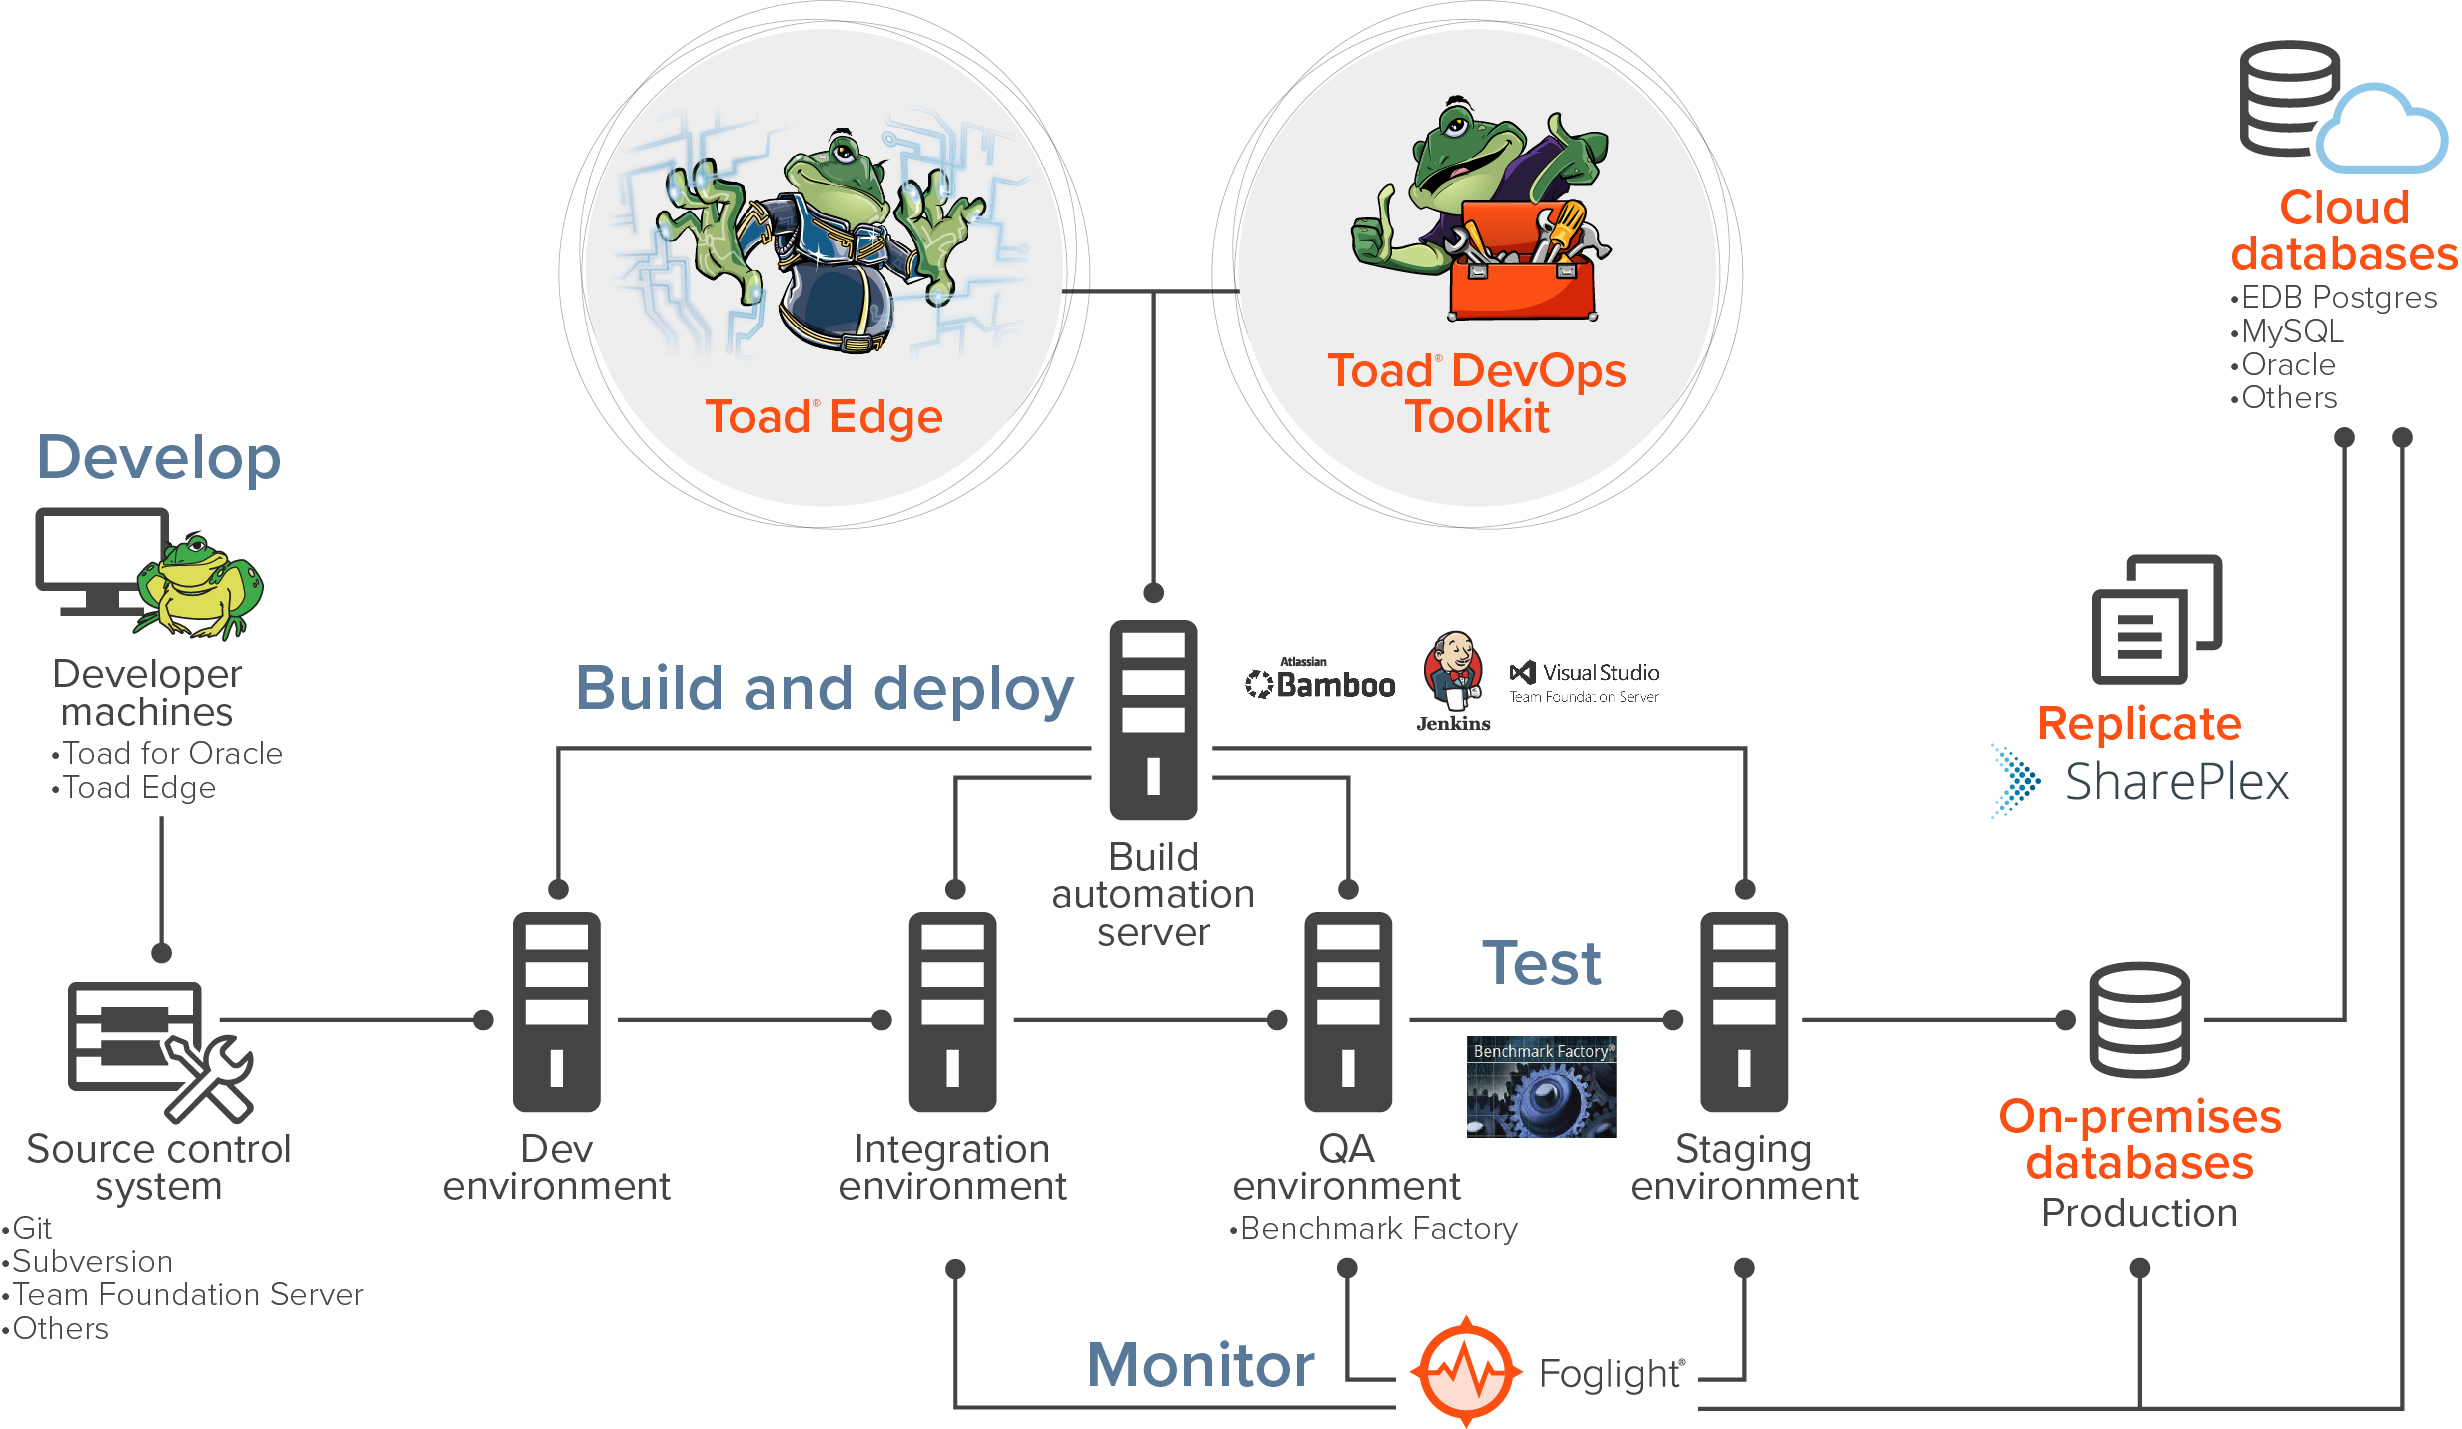 devops tools for continuous delivery and deployment